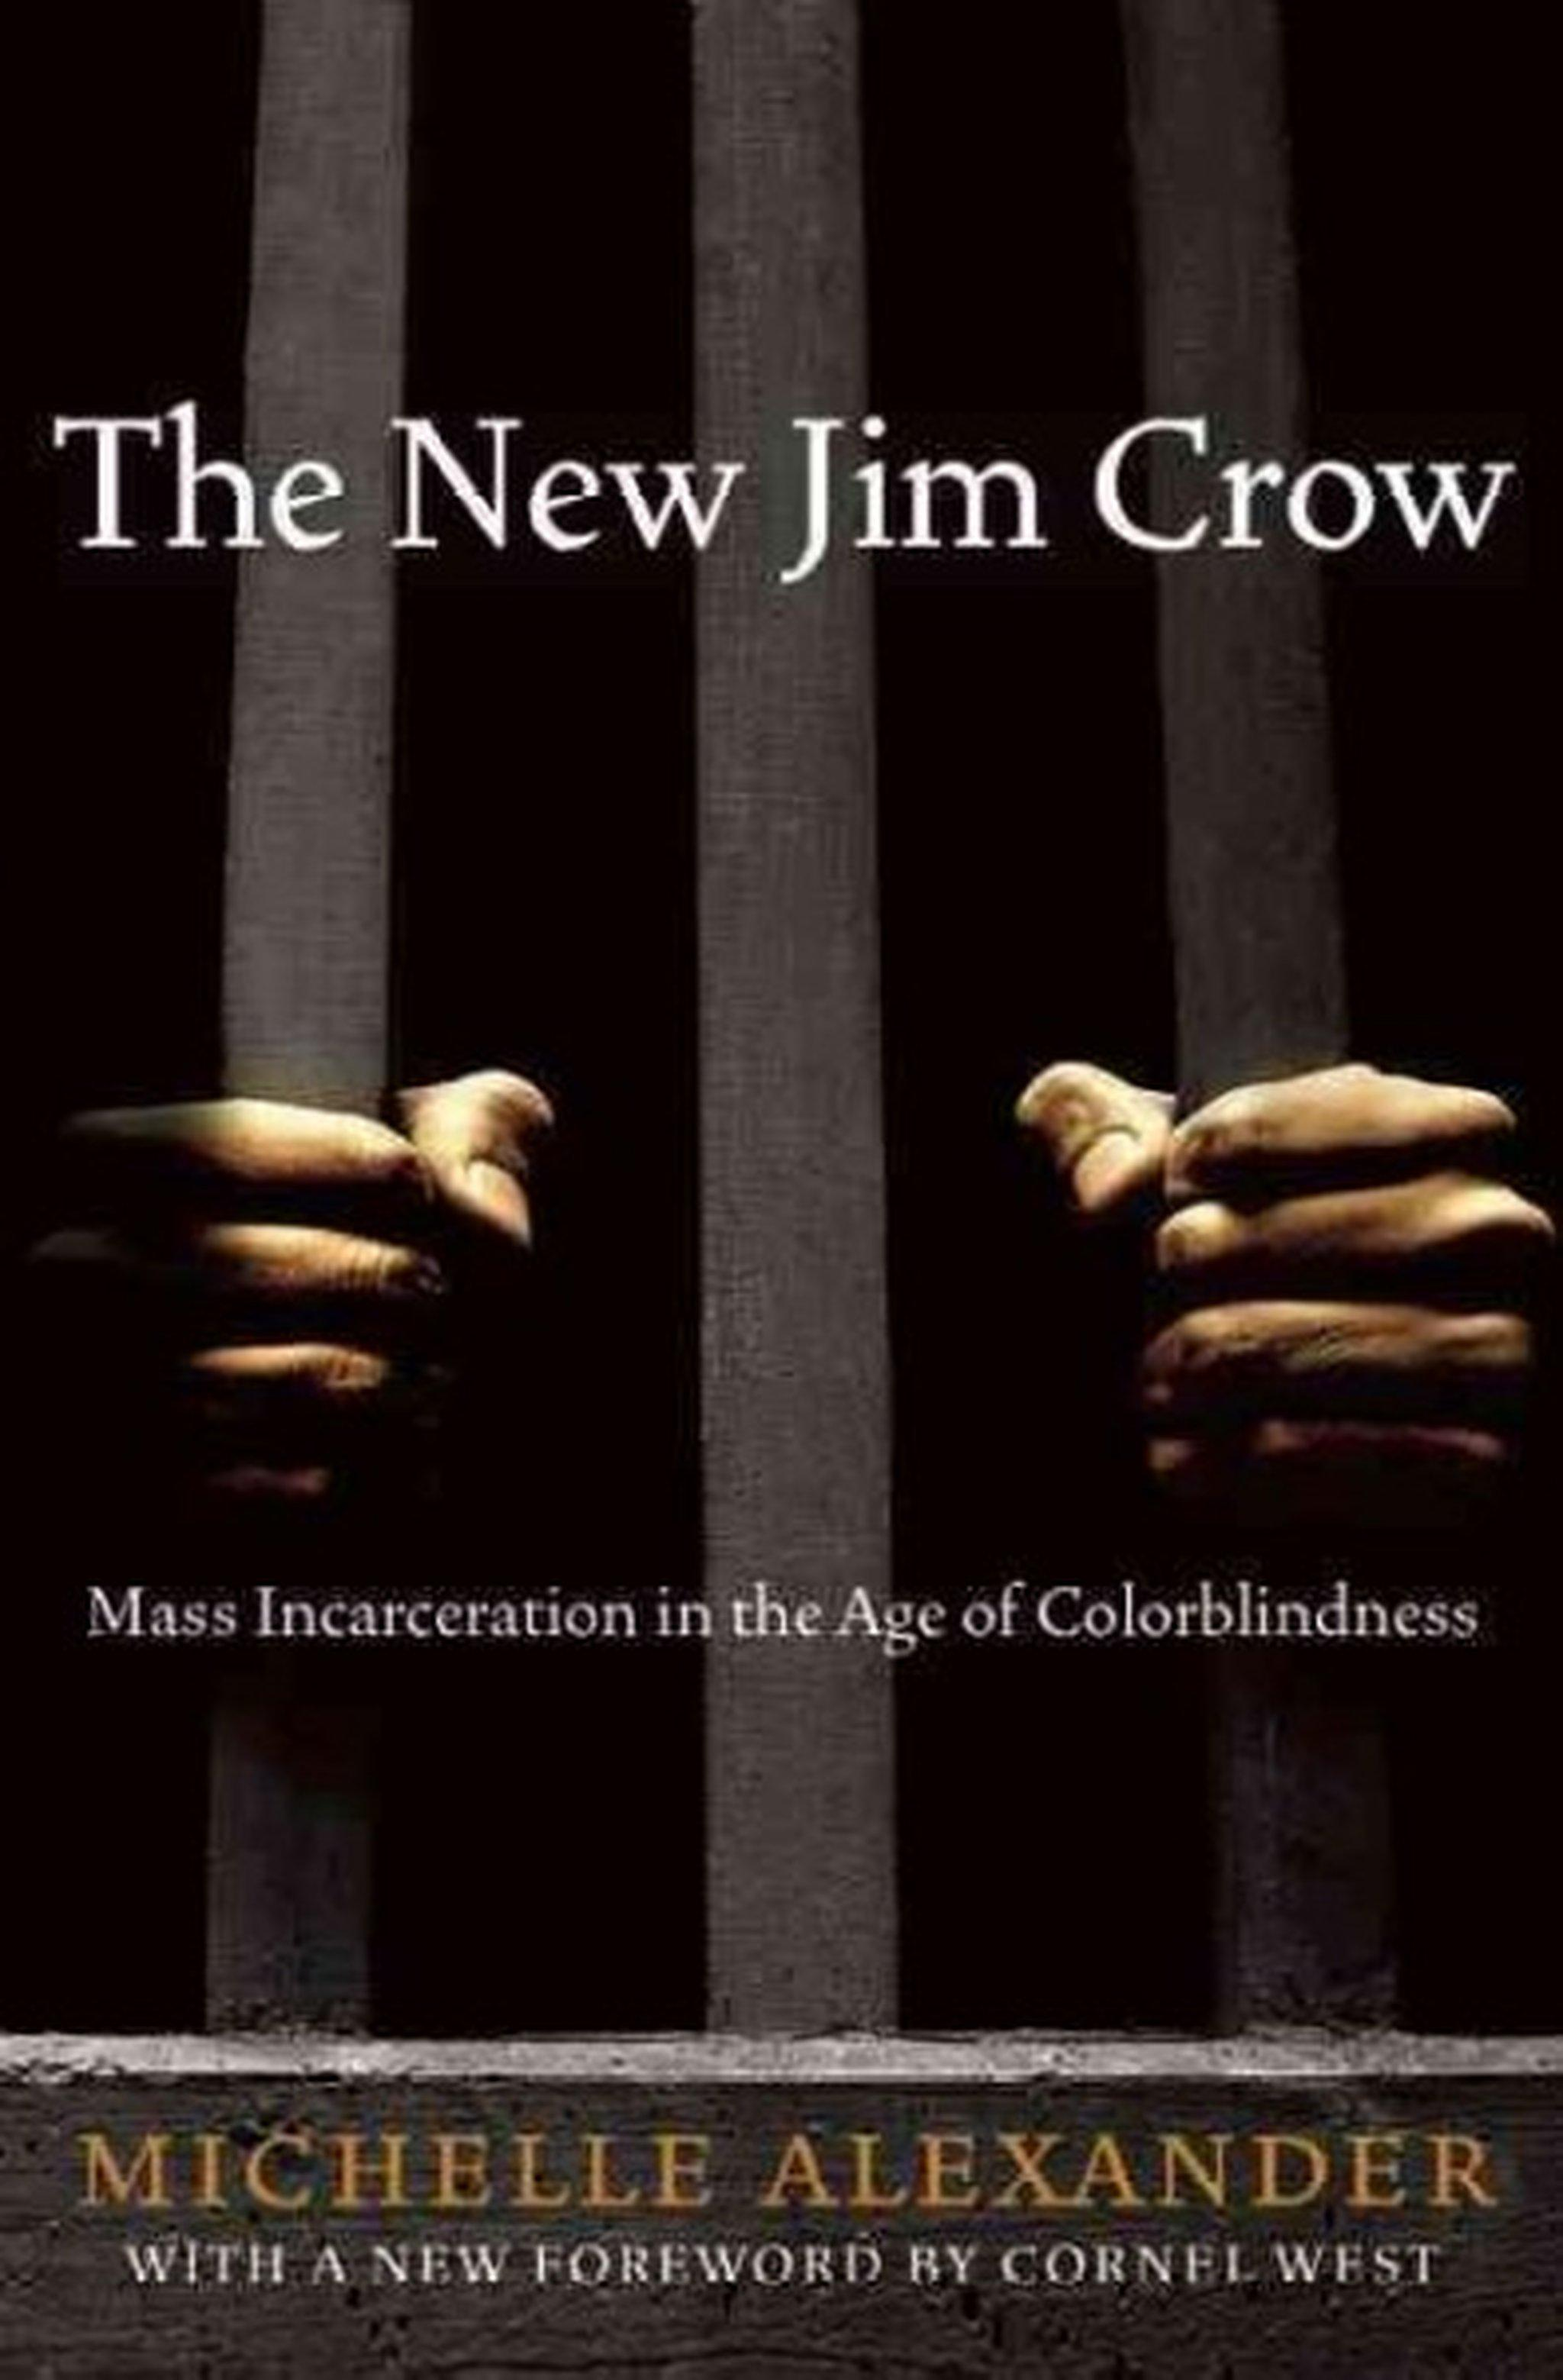 Image result for the new jim crow